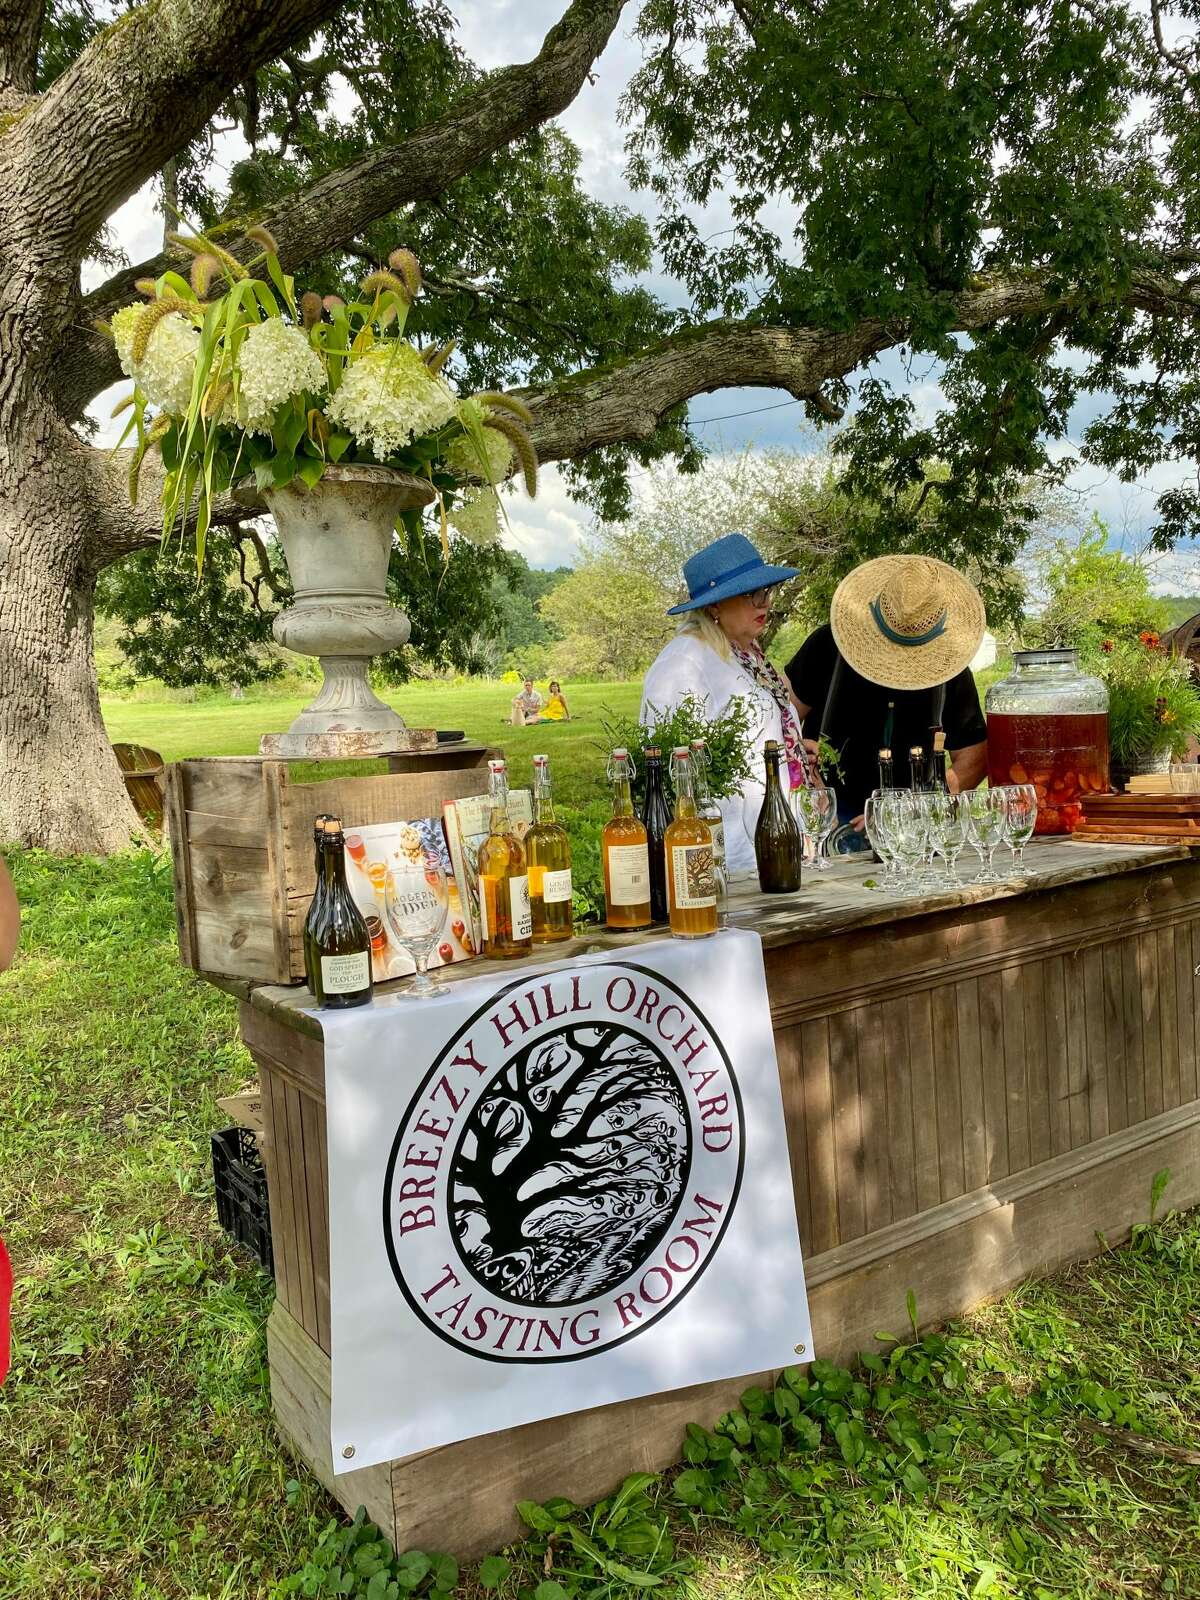 Terrain & Table, a new venture from the Catskill-based lifestyle brand The Farmhouse Project, collaborates with regional beverage producers including Breezy Hill orchard in Dutchess County to host outdoor dinners on farms.